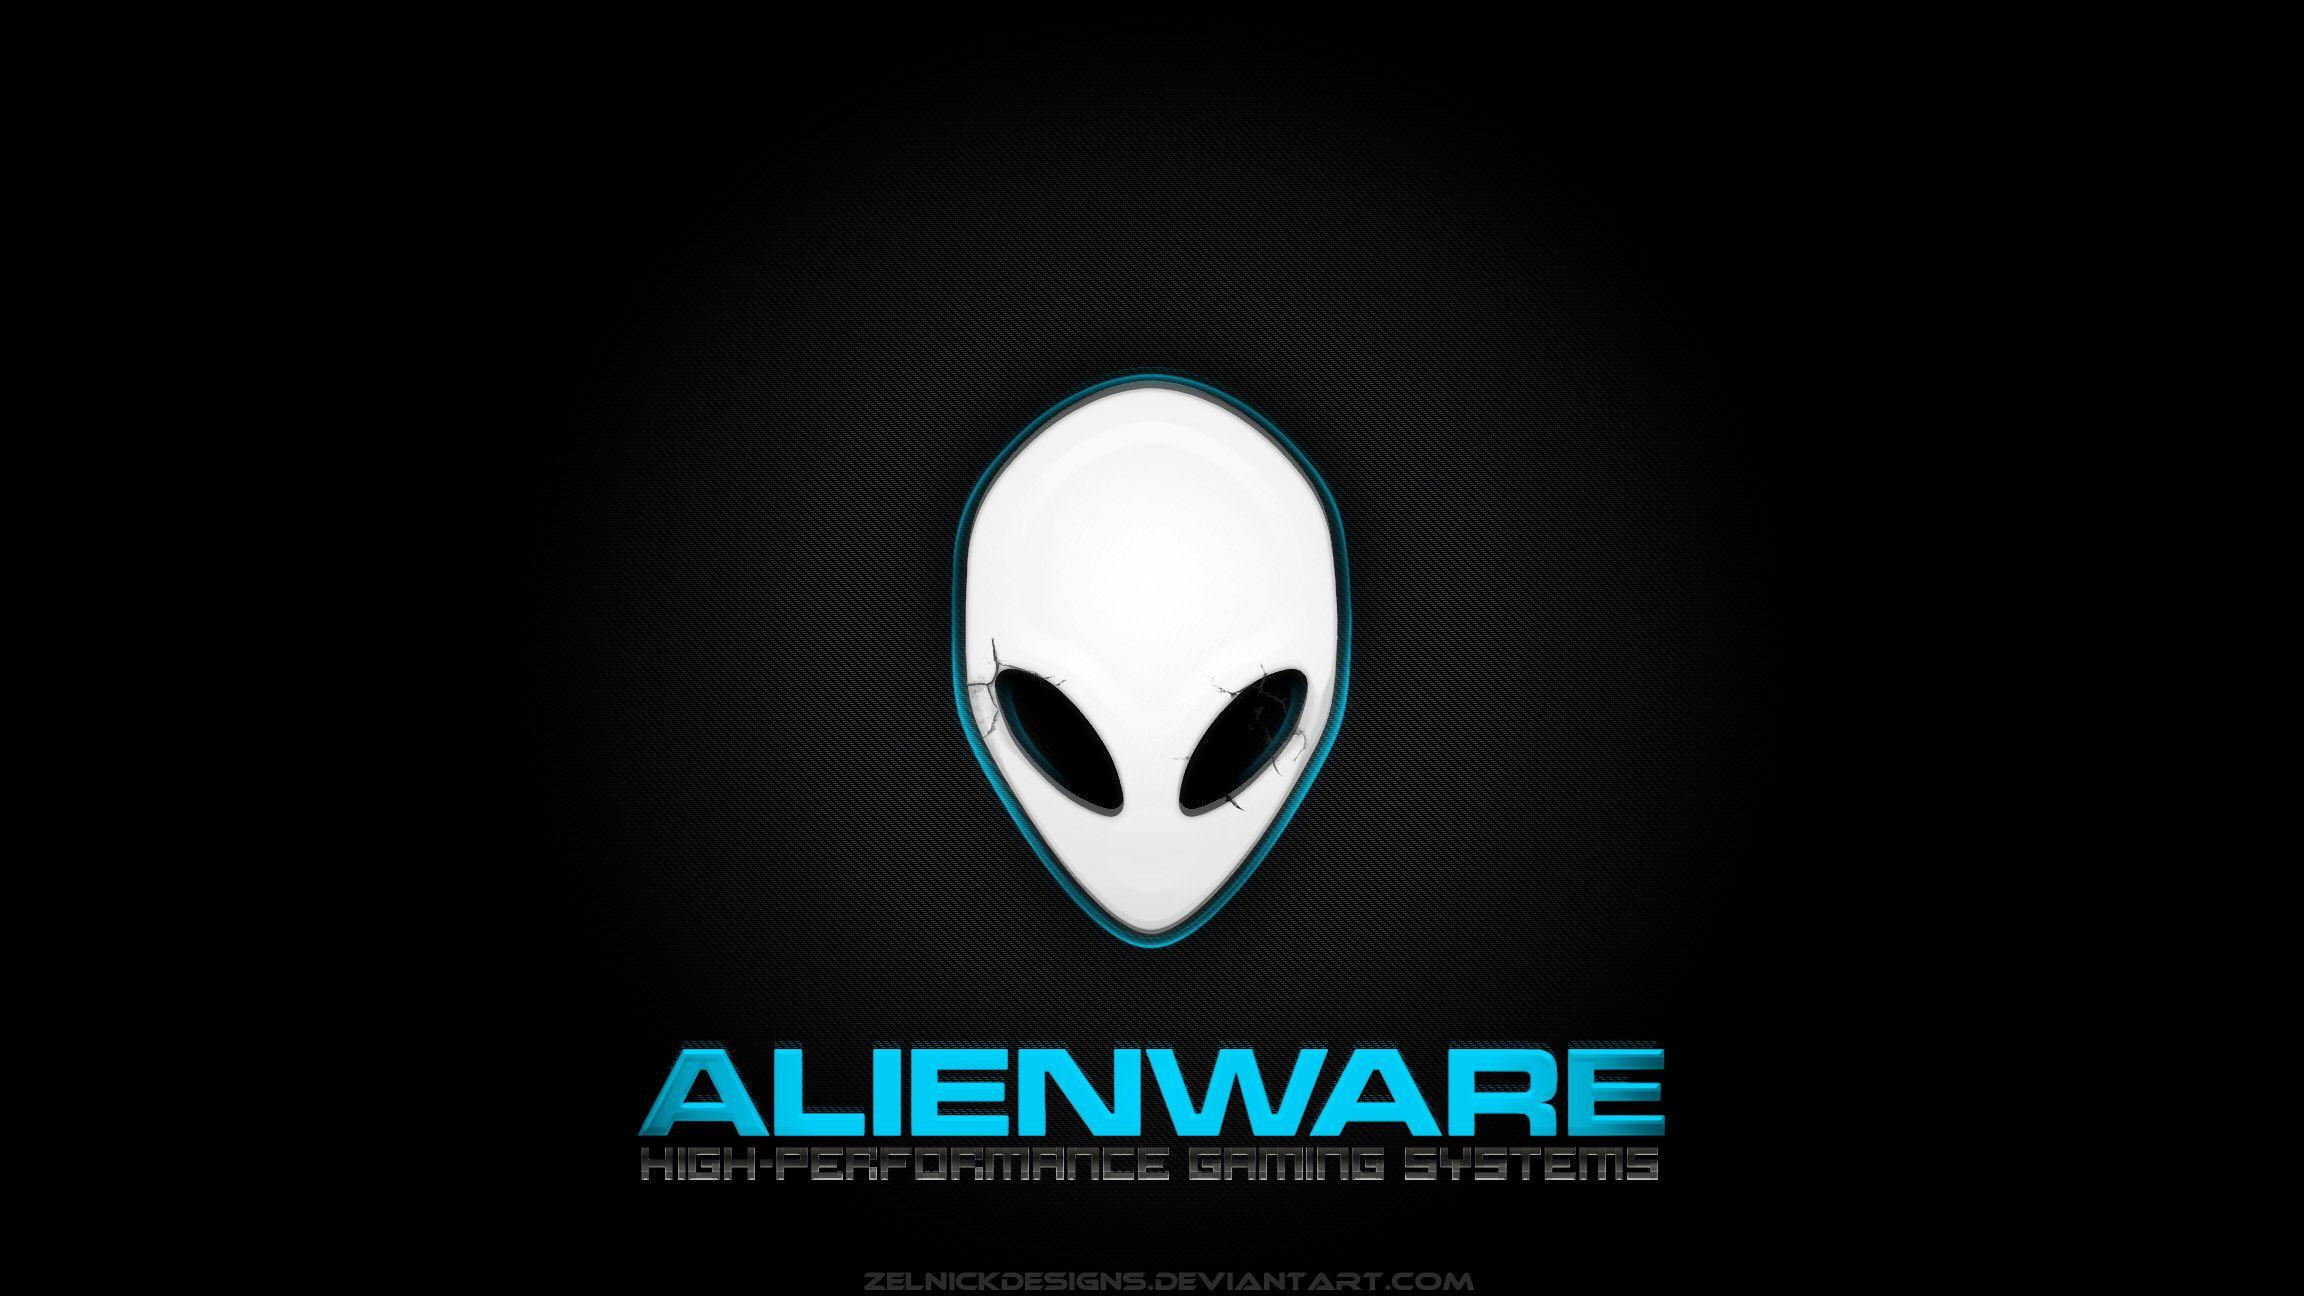 Alienware Wallpaper Pack v2 by ZelnickDesigns on DeviantArt